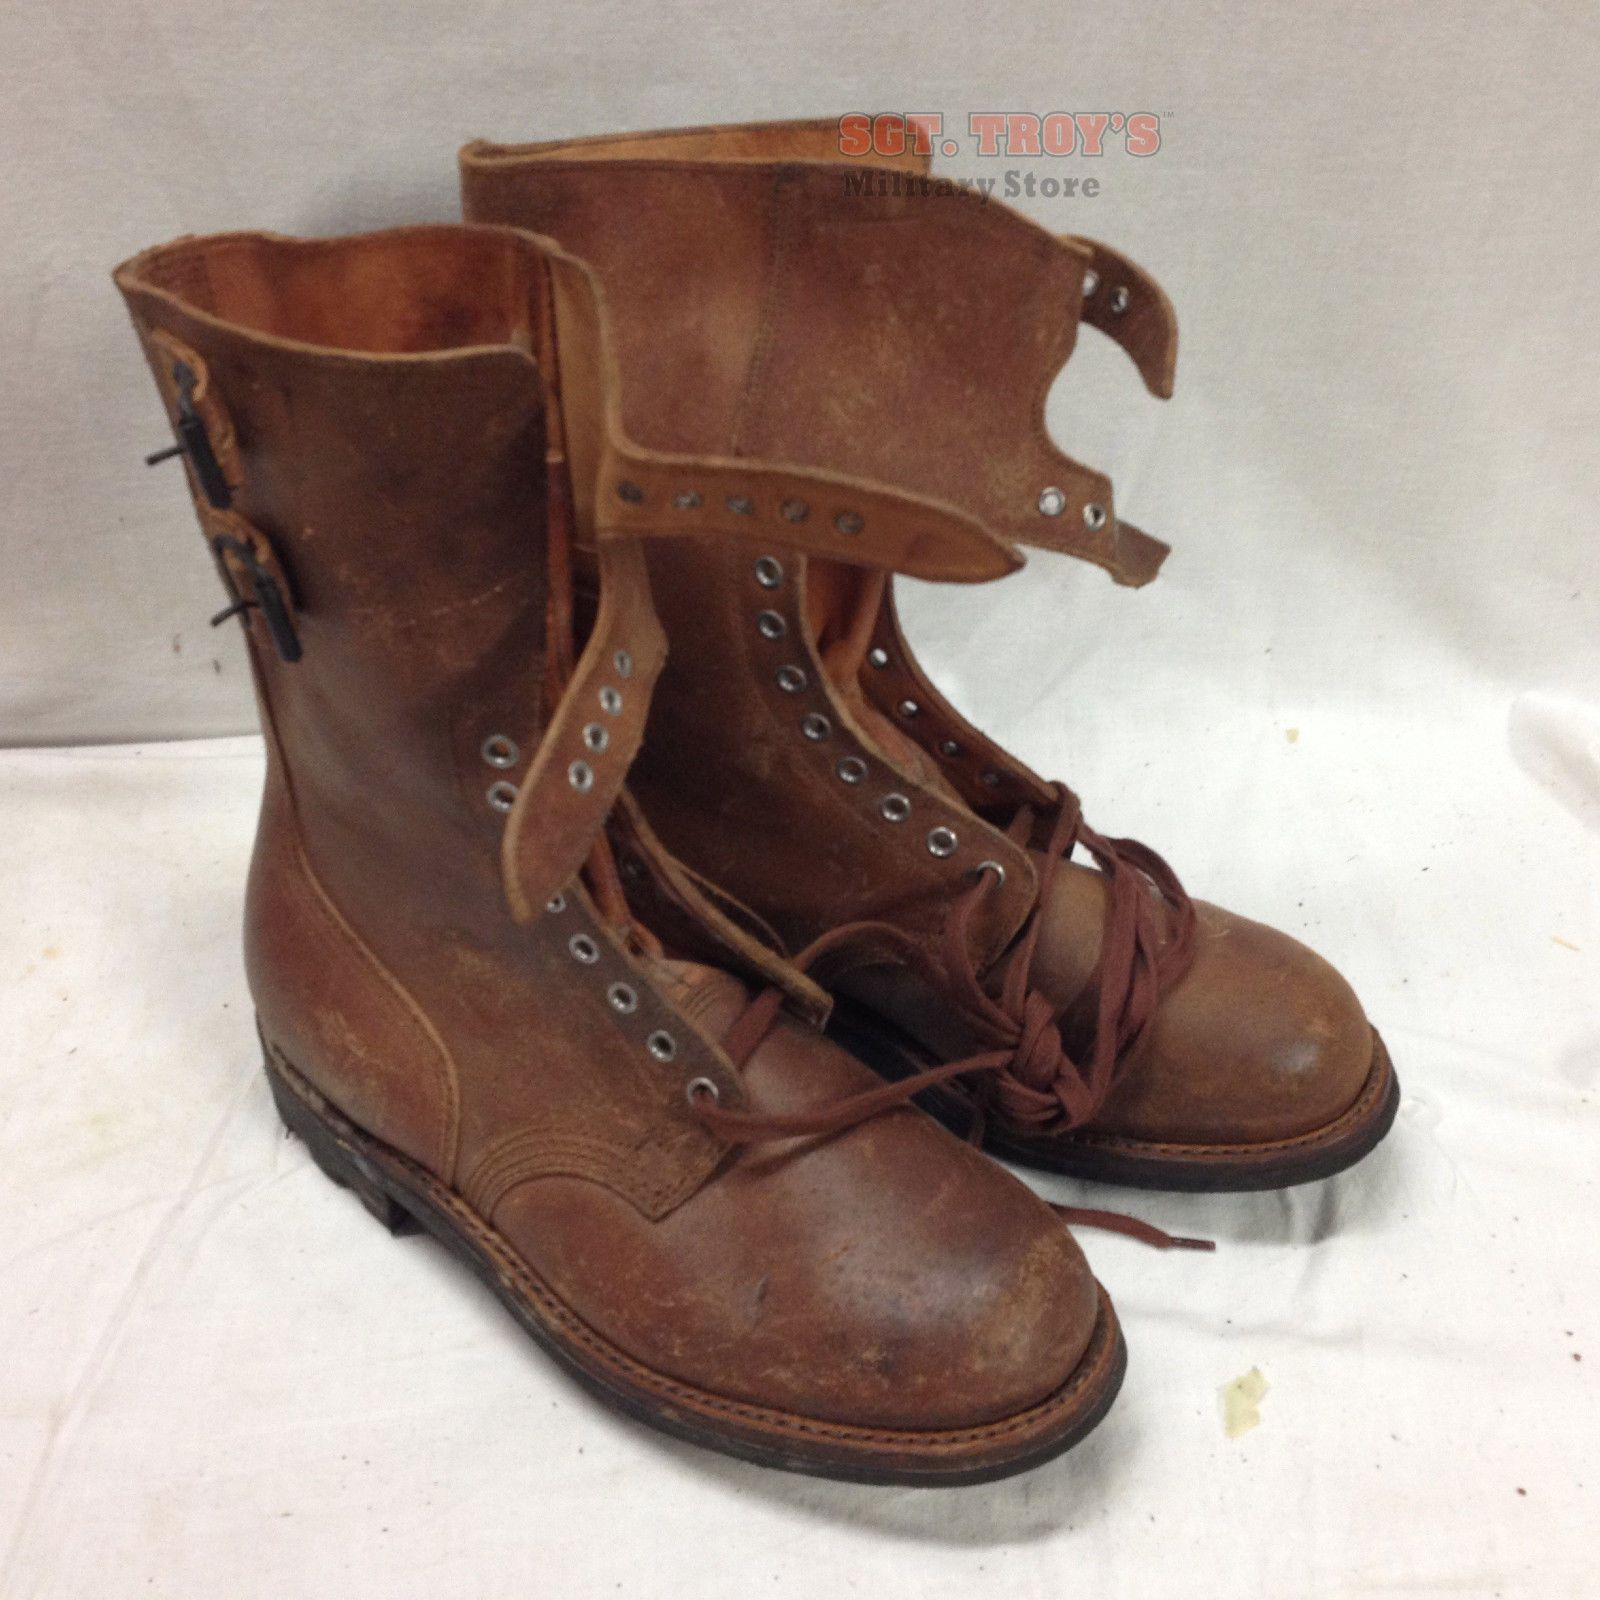 b1dfc4c6ad5 1960s French Combat Boots Genuine Leather Size 44 (10) Vintage ...